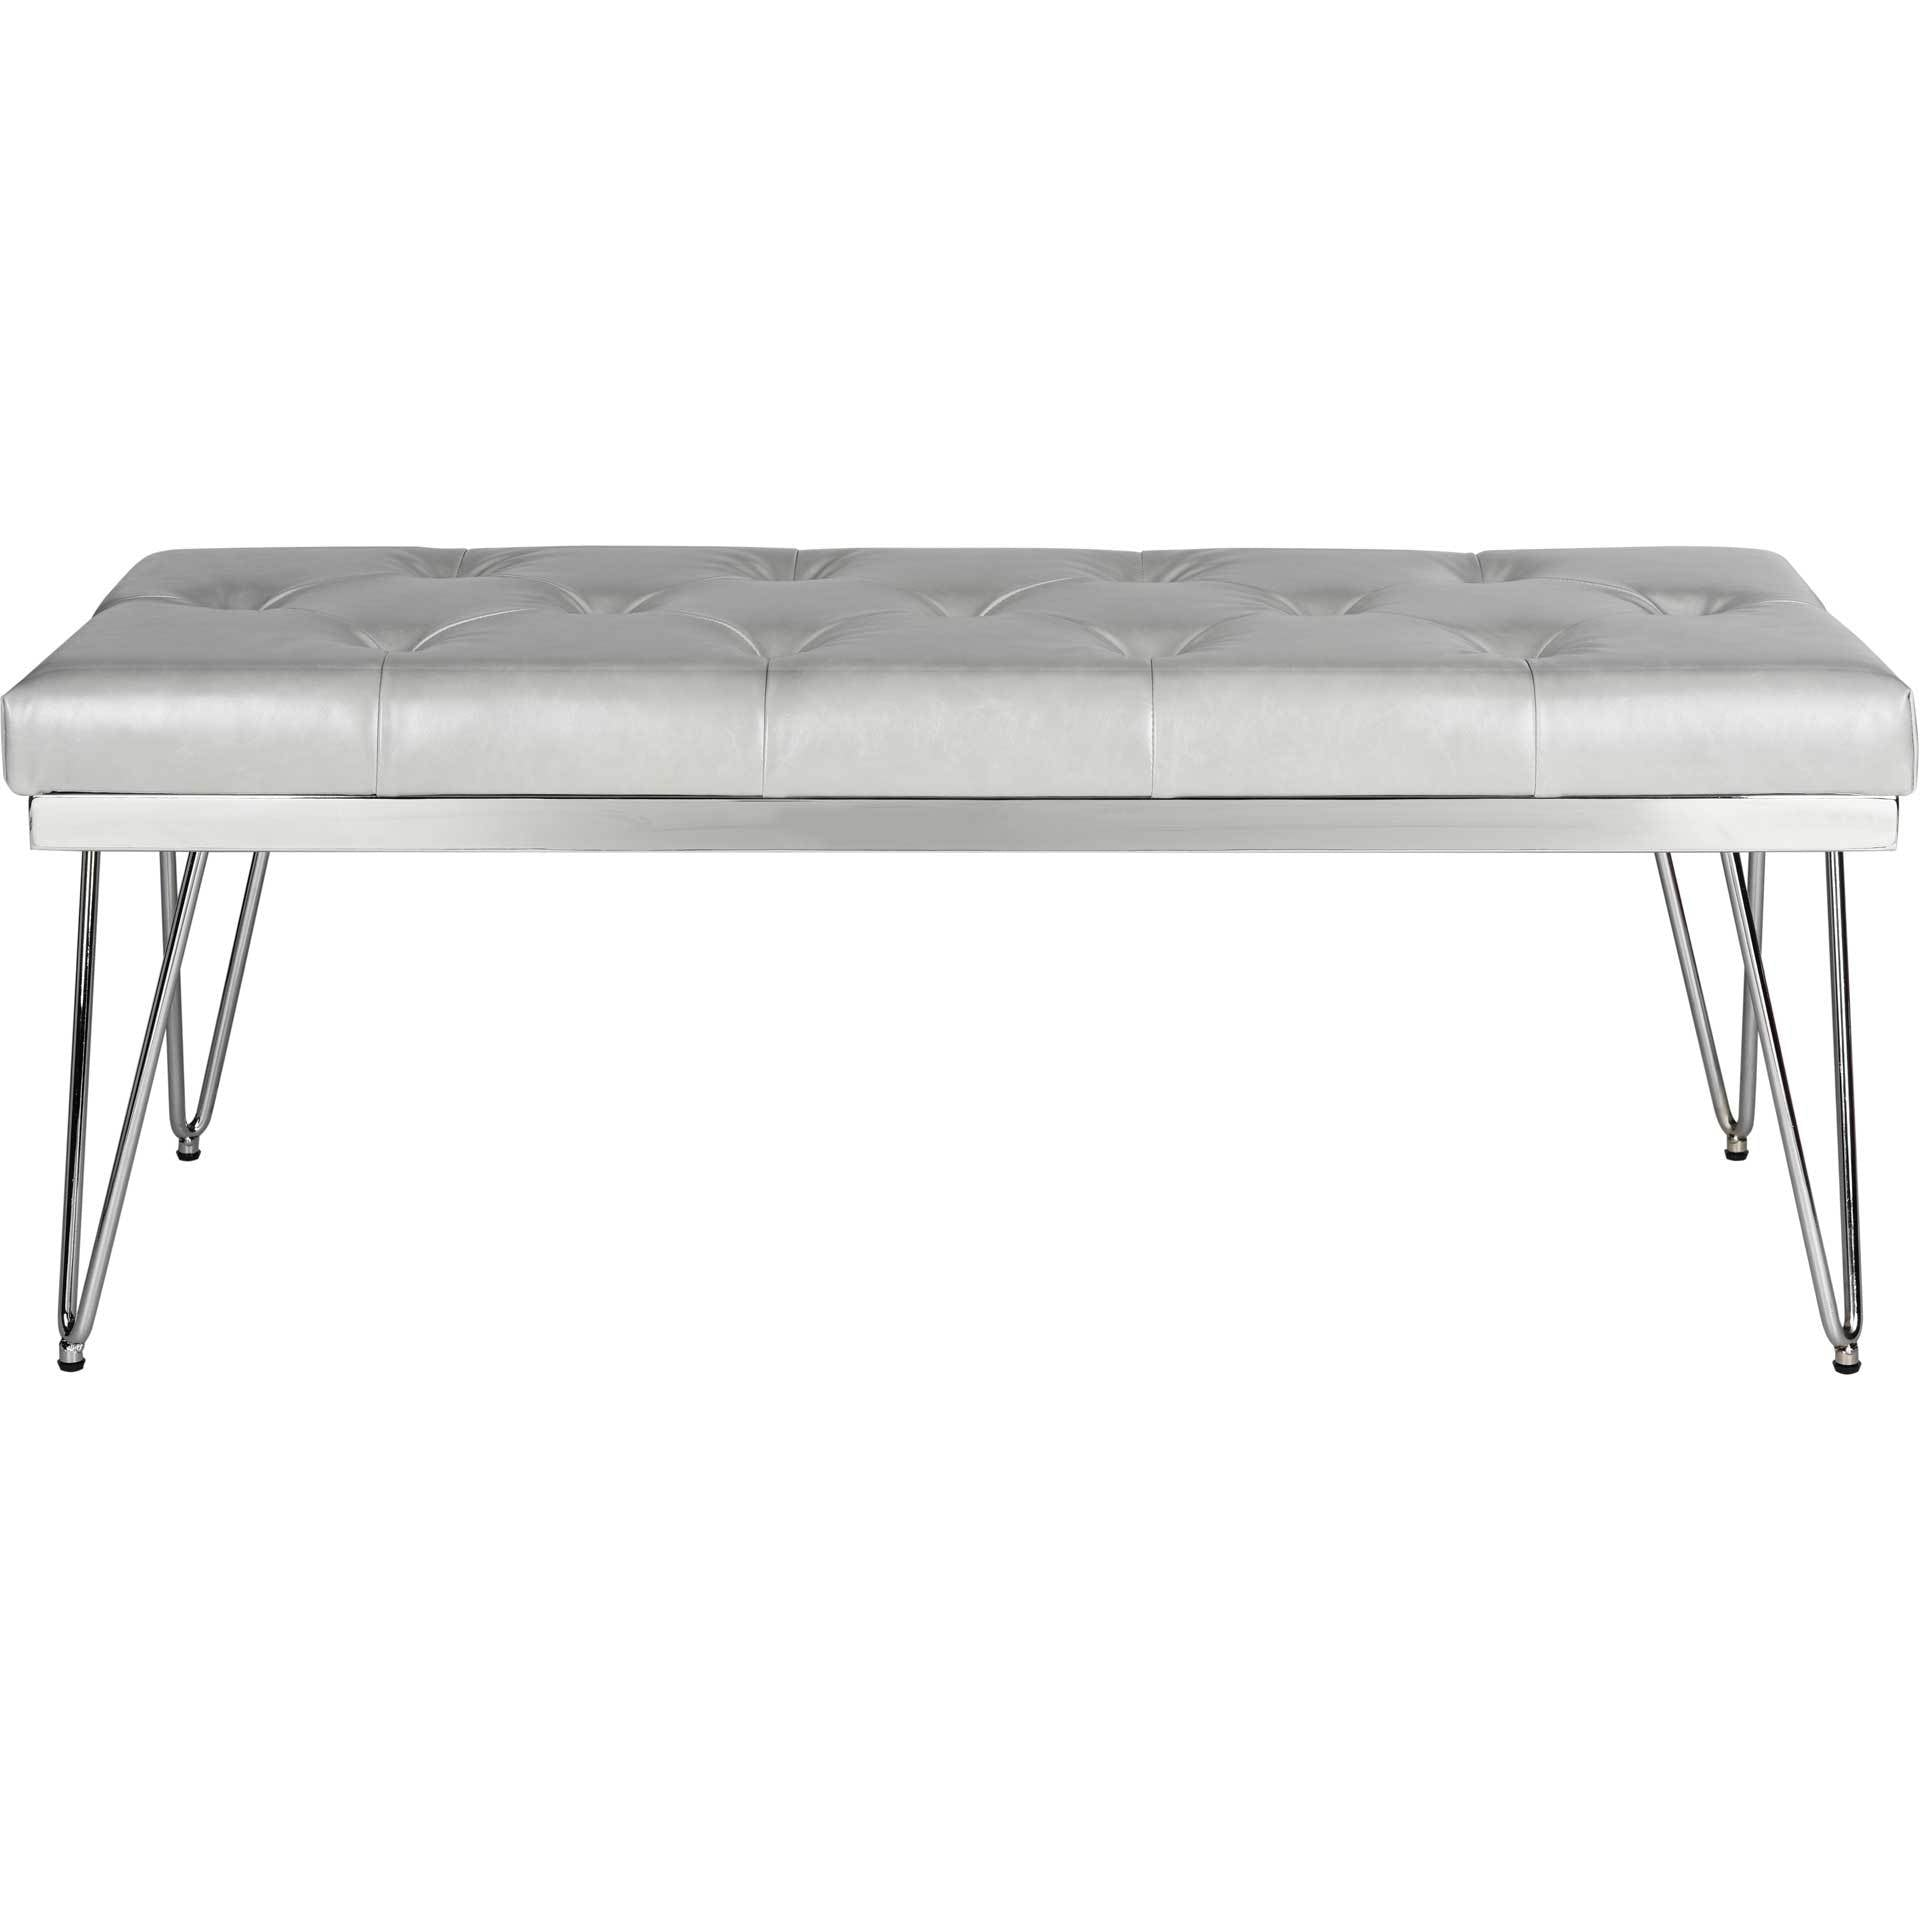 Maxim Bench Gray/Chrome